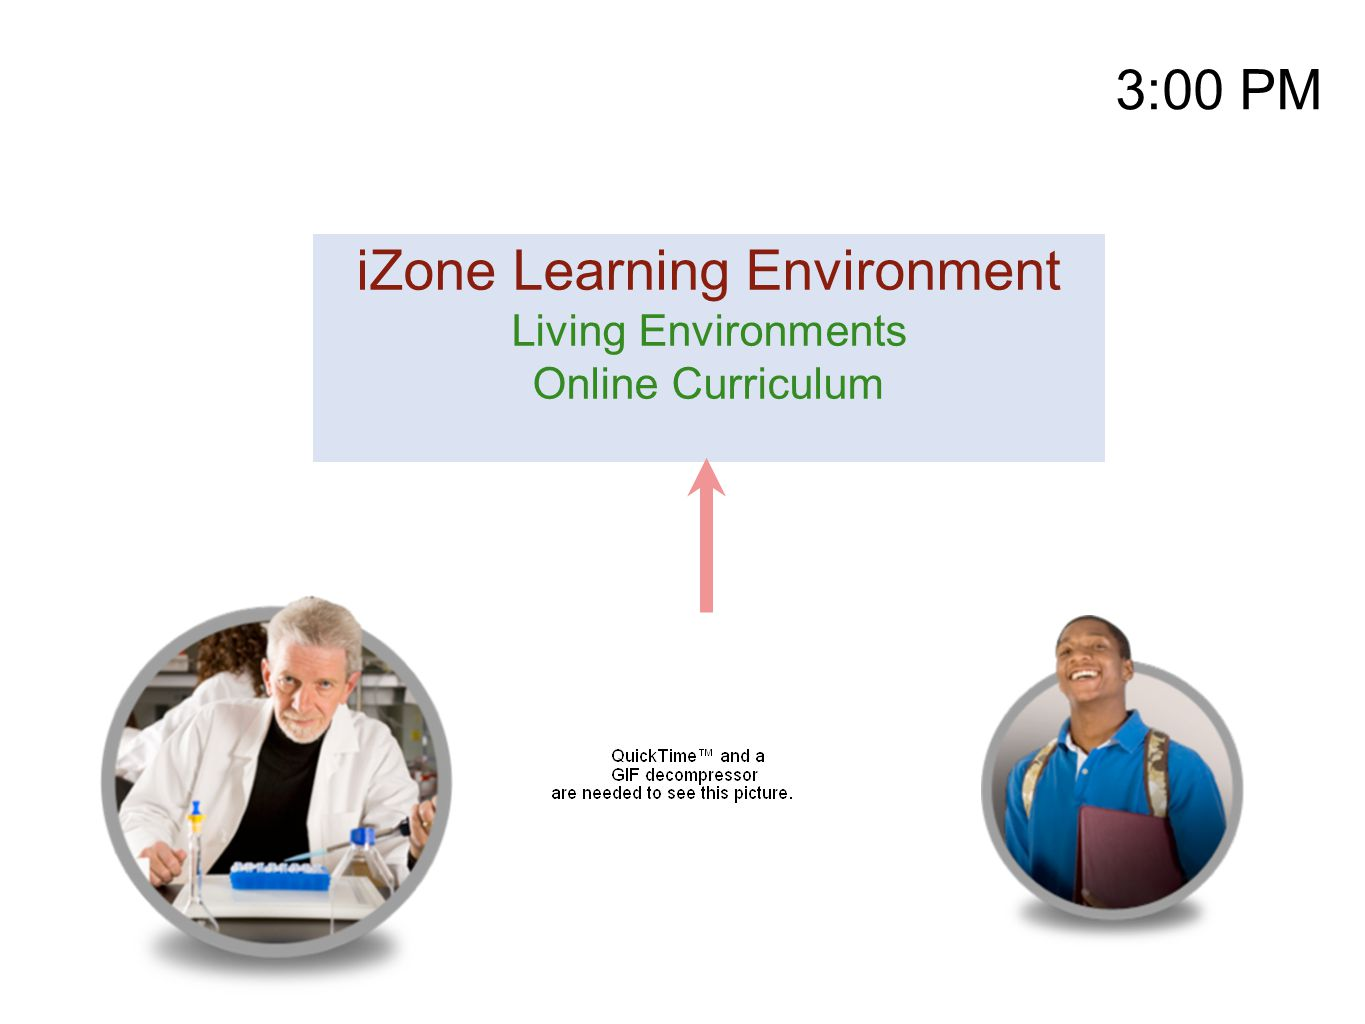 3:00 PM iZone Learning Environment Living Environments Online Curriculum